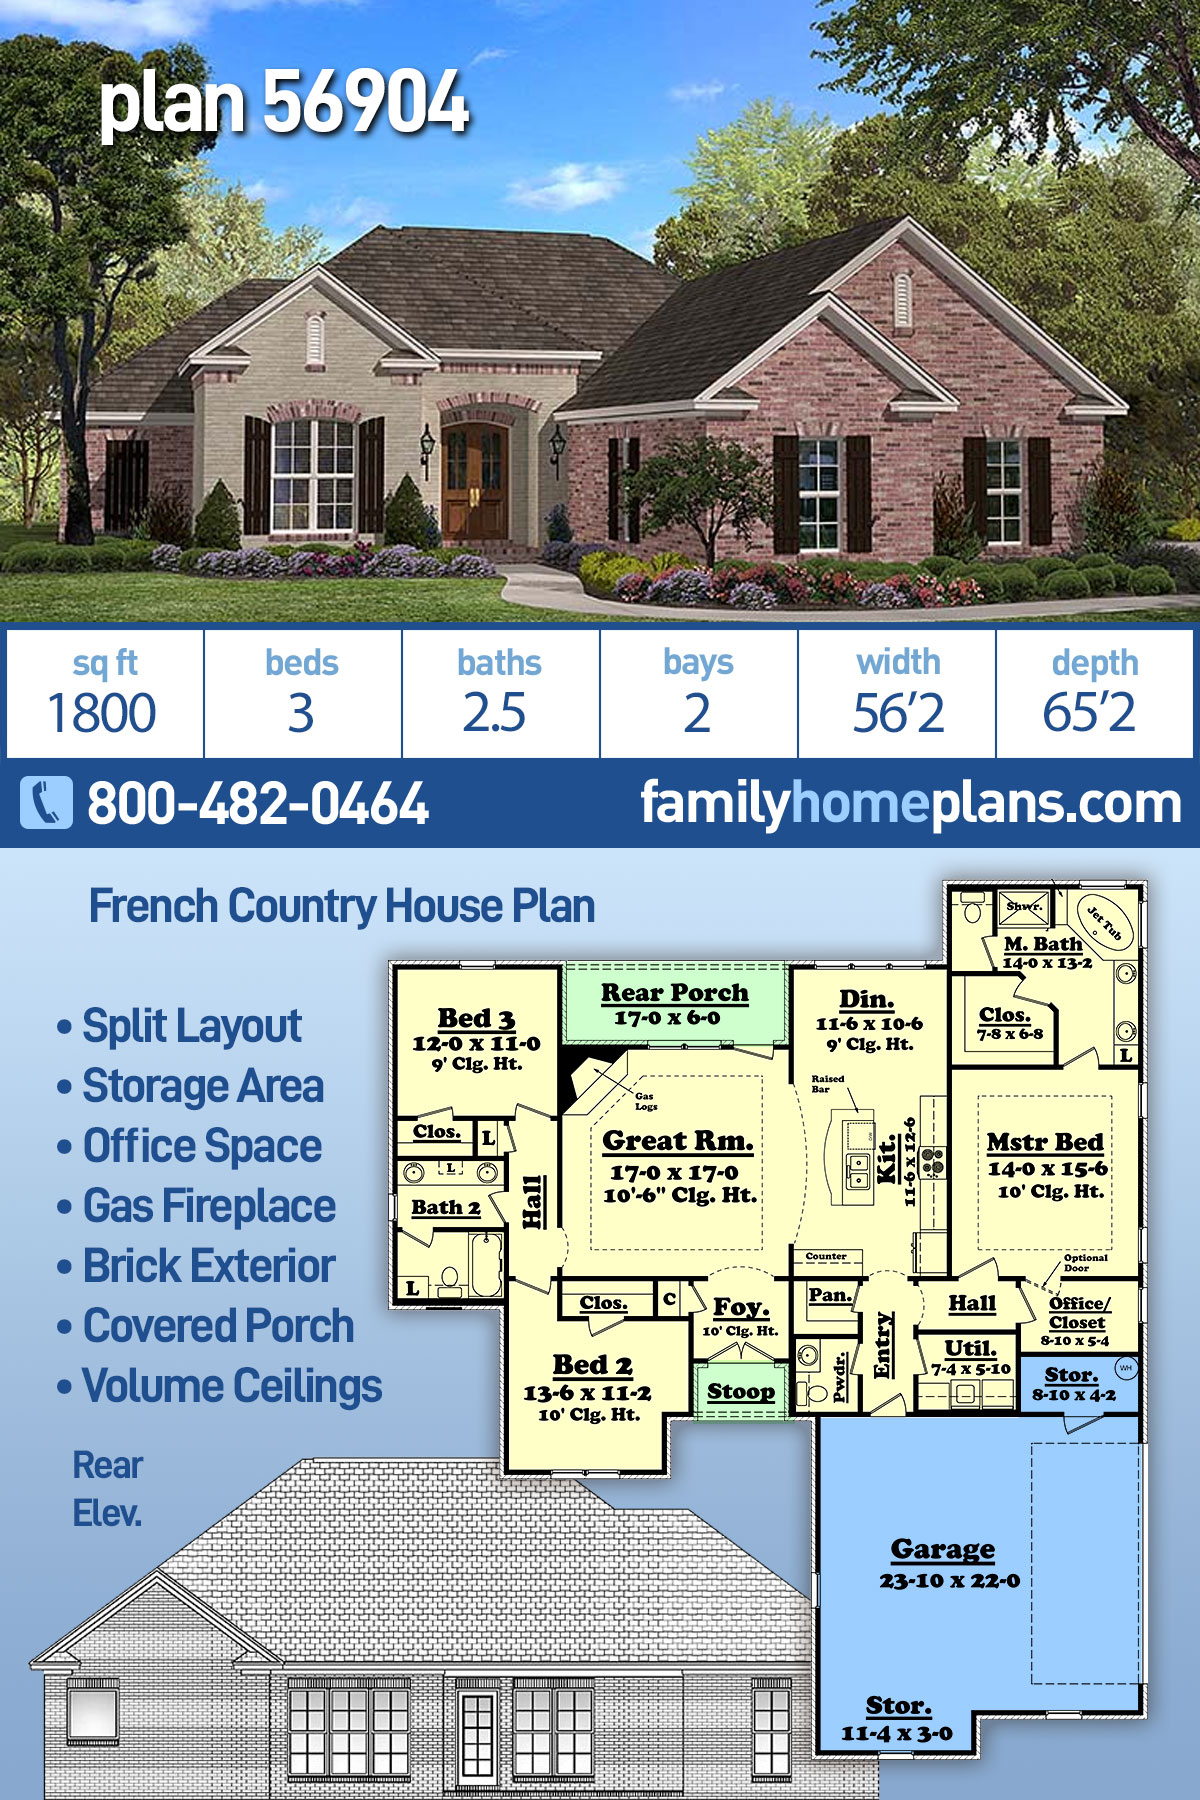 Country, French Country House Plan 56904 with 3 Beds, 3 Baths, 2 Car Garage